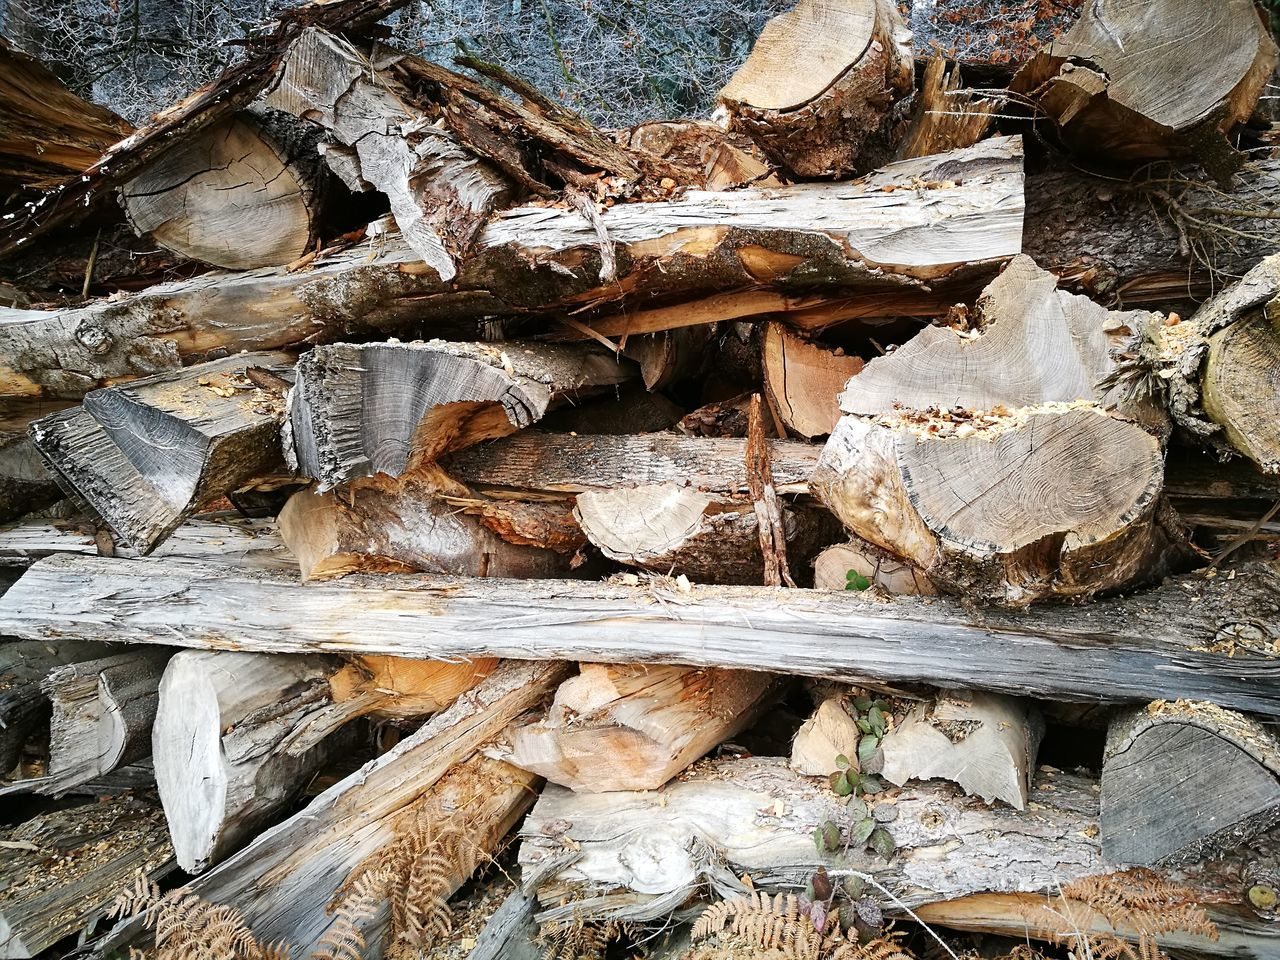 timber, log, stack, wood - material, lumber industry, full frame, deforestation, no people, heap, woodpile, day, forestry industry, backgrounds, outdoors, large group of objects, close-up, nature